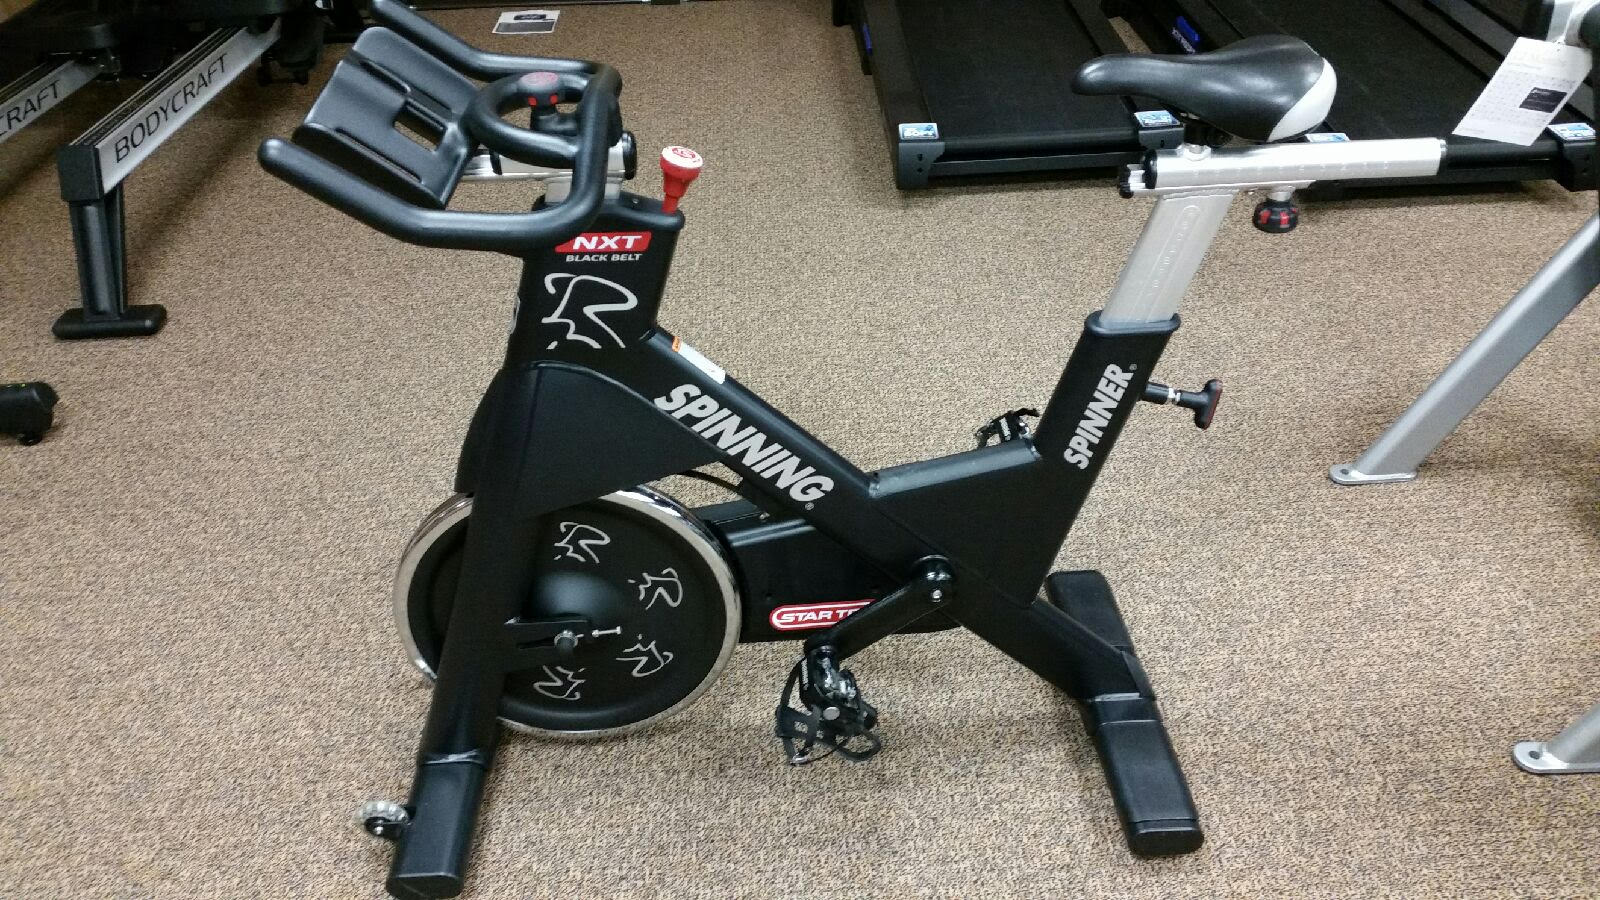 Spin Bikes For Sale >> Treadmill Medic - Used Star Trac NXT Spin Bikes